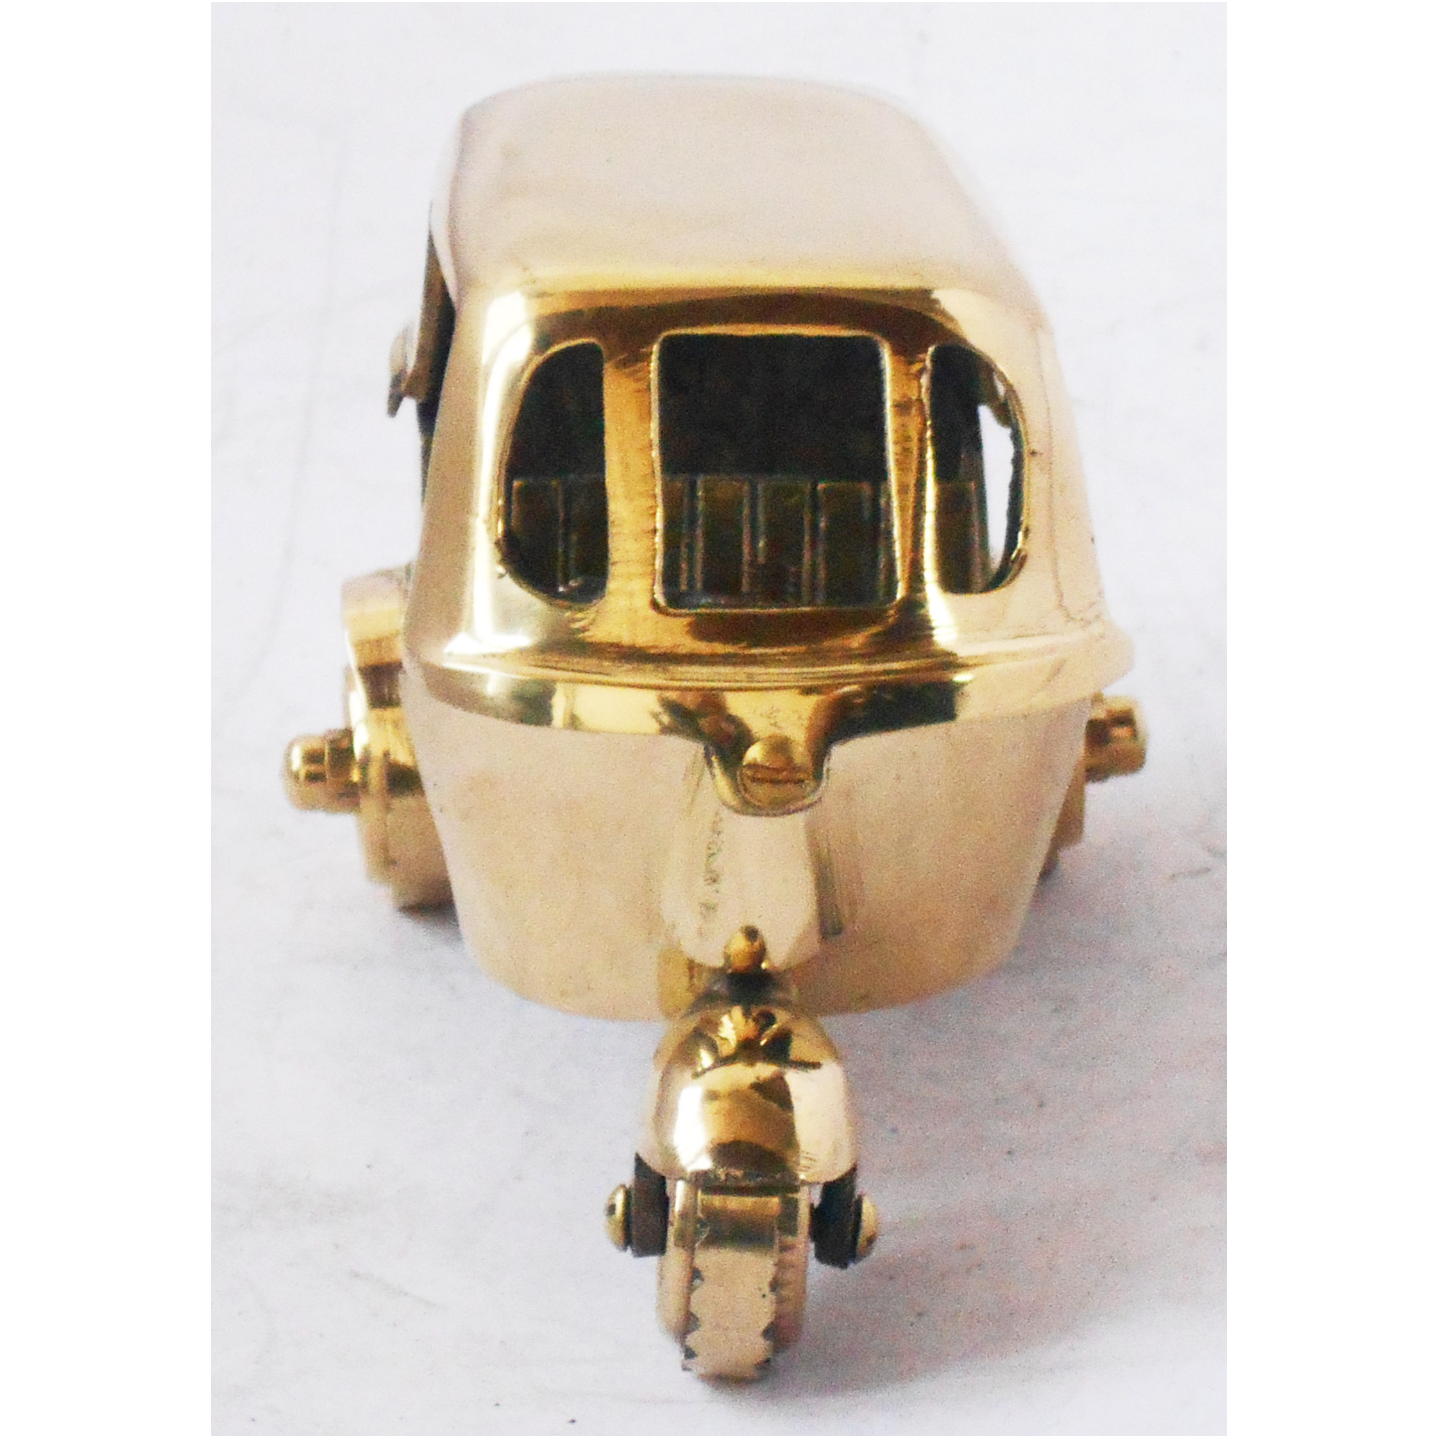 Brass Auto Toy Miniature For Children Playing- 5*3*3 inch (Z349 C)